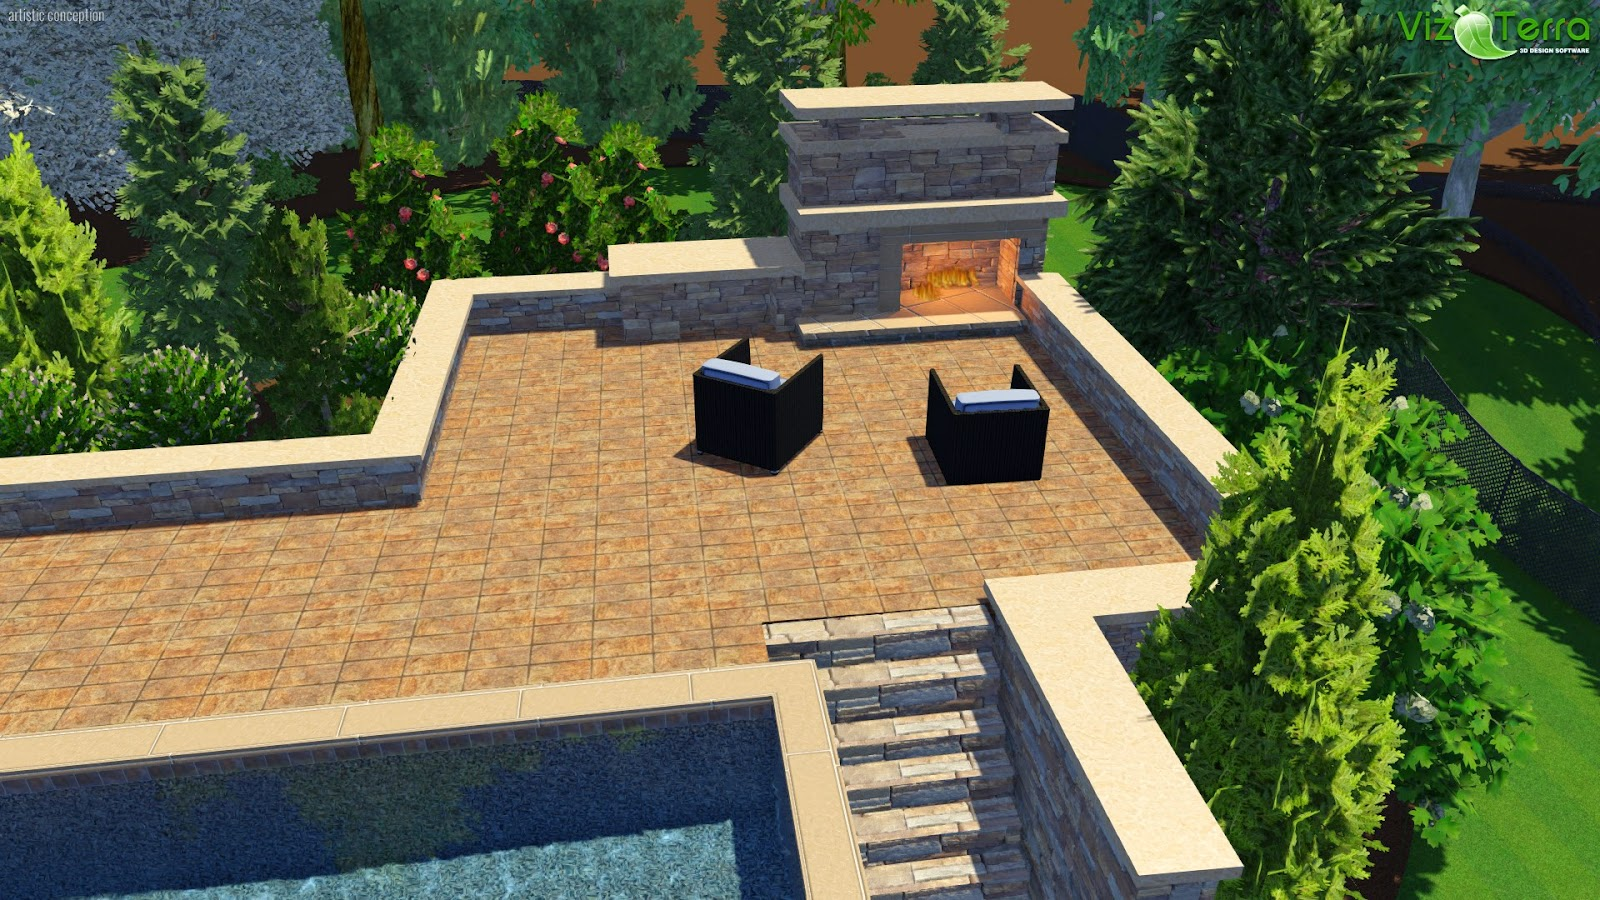 Building A New House The Golden Rules Of The Landscaping Budget Hawkins Landscape Architecture